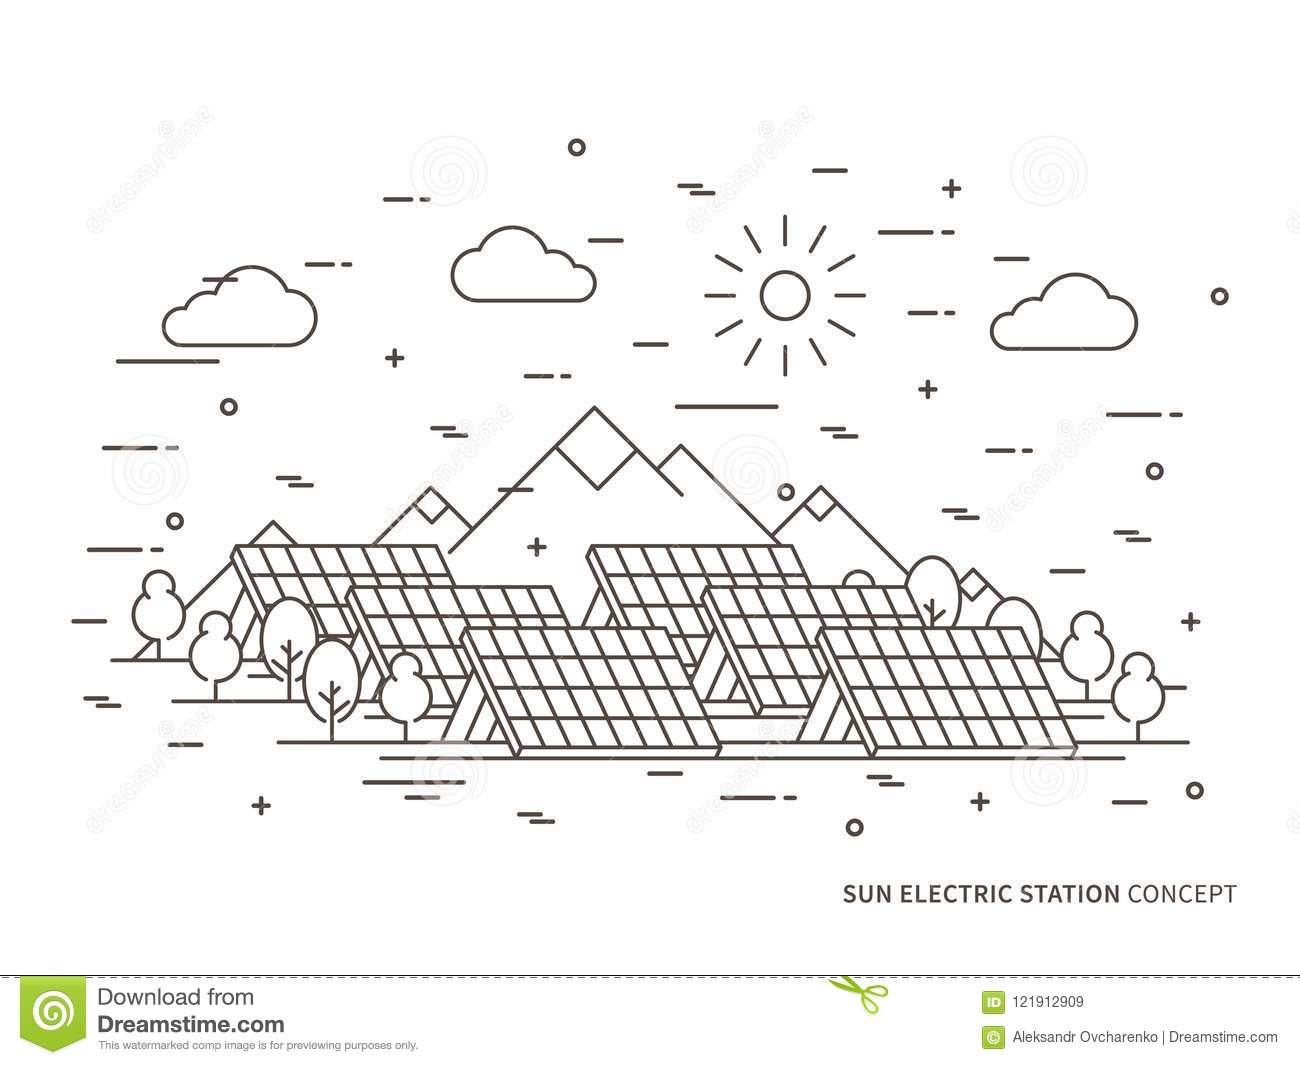 hight resolution of solar power engineering solar power plant solar plant creative concept solar electricity solar thermal power system solar cell panel graphic